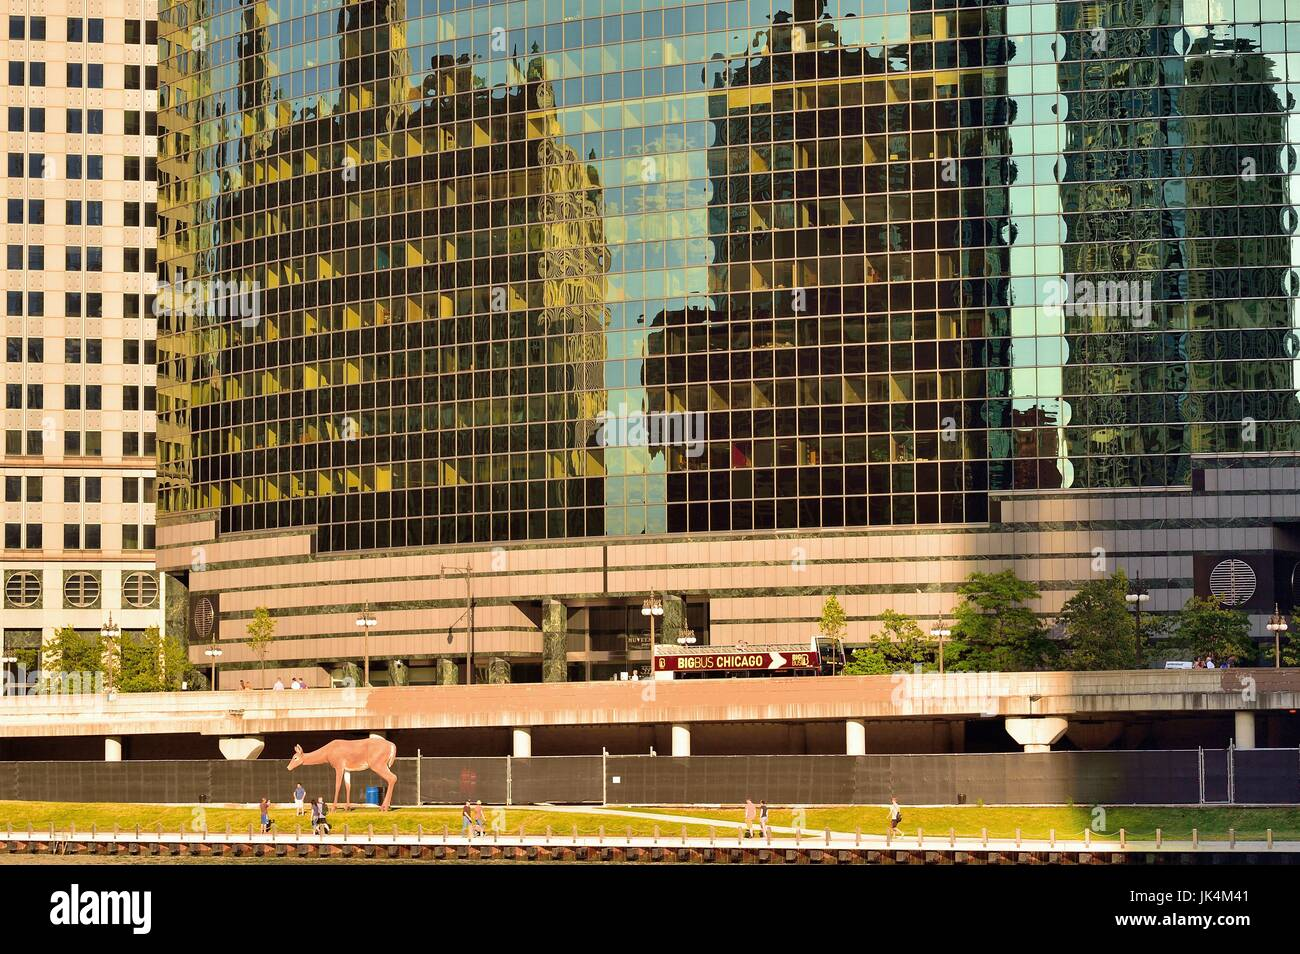 A larger-than-life sized white tail deer sculpture gracing the Chicago Riverwalk in front of the sleek 333 Wacker - Stock Image